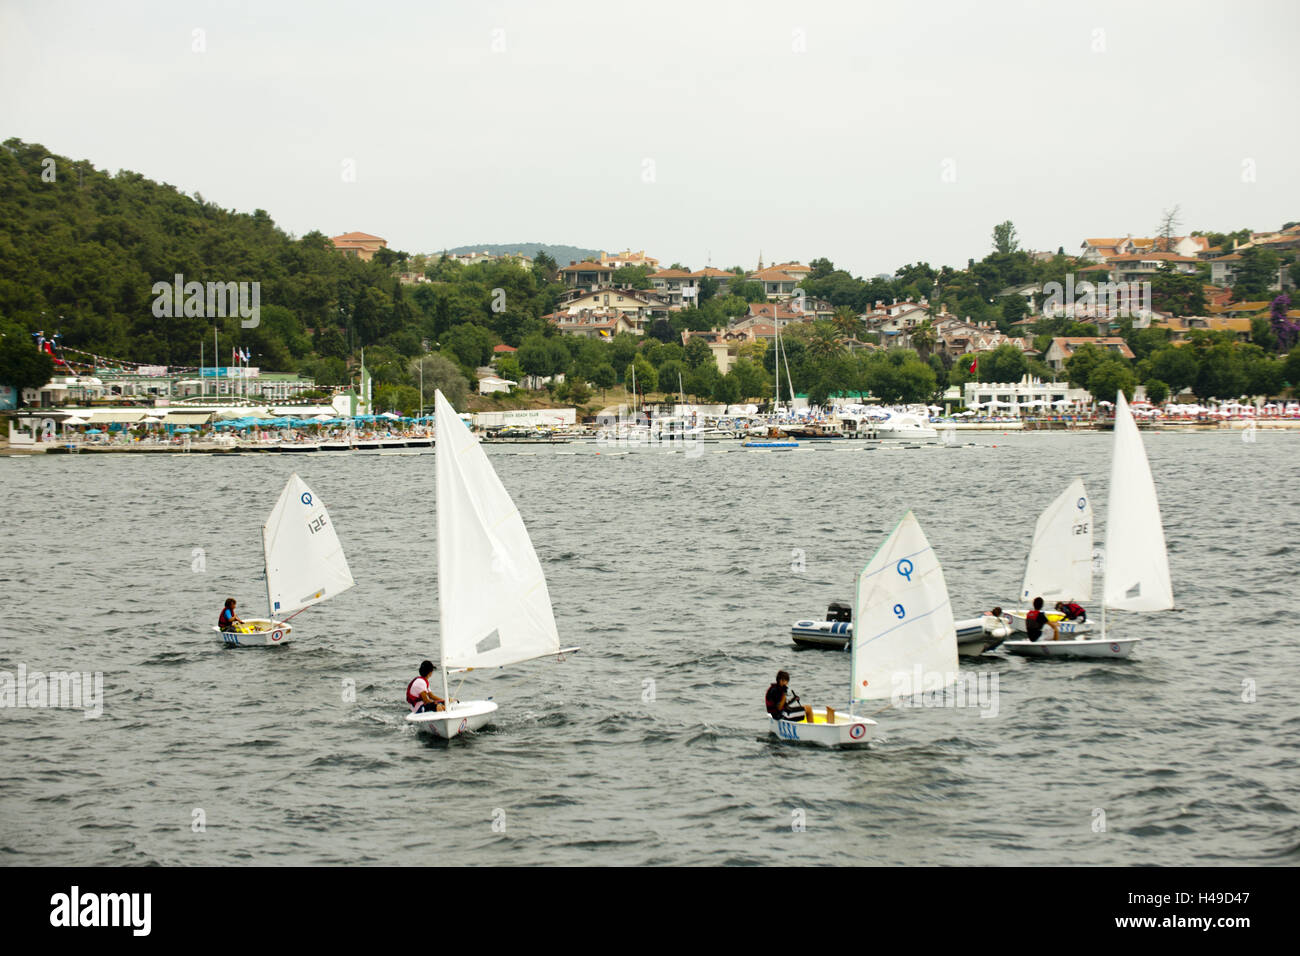 Turkey, Istanbul, prince's islands in the Marmarameer, optimists in front of Heybeliada, - Stock Image